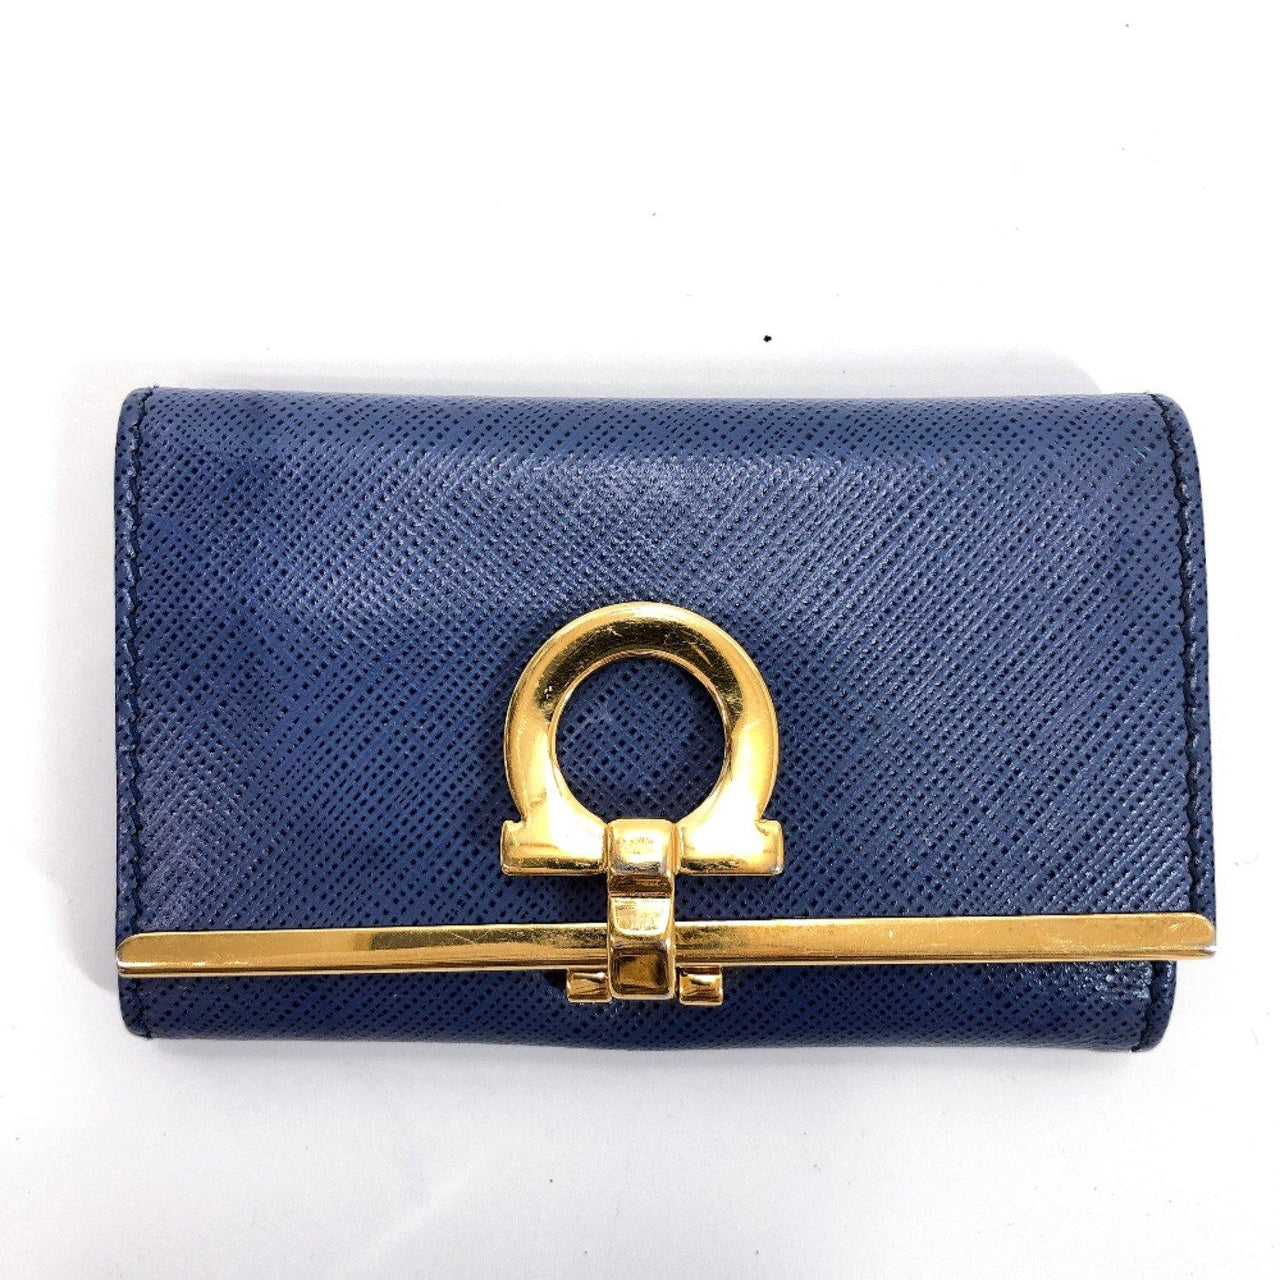 Salvatore Ferragamo key holder Gancini leather blue unisex Used